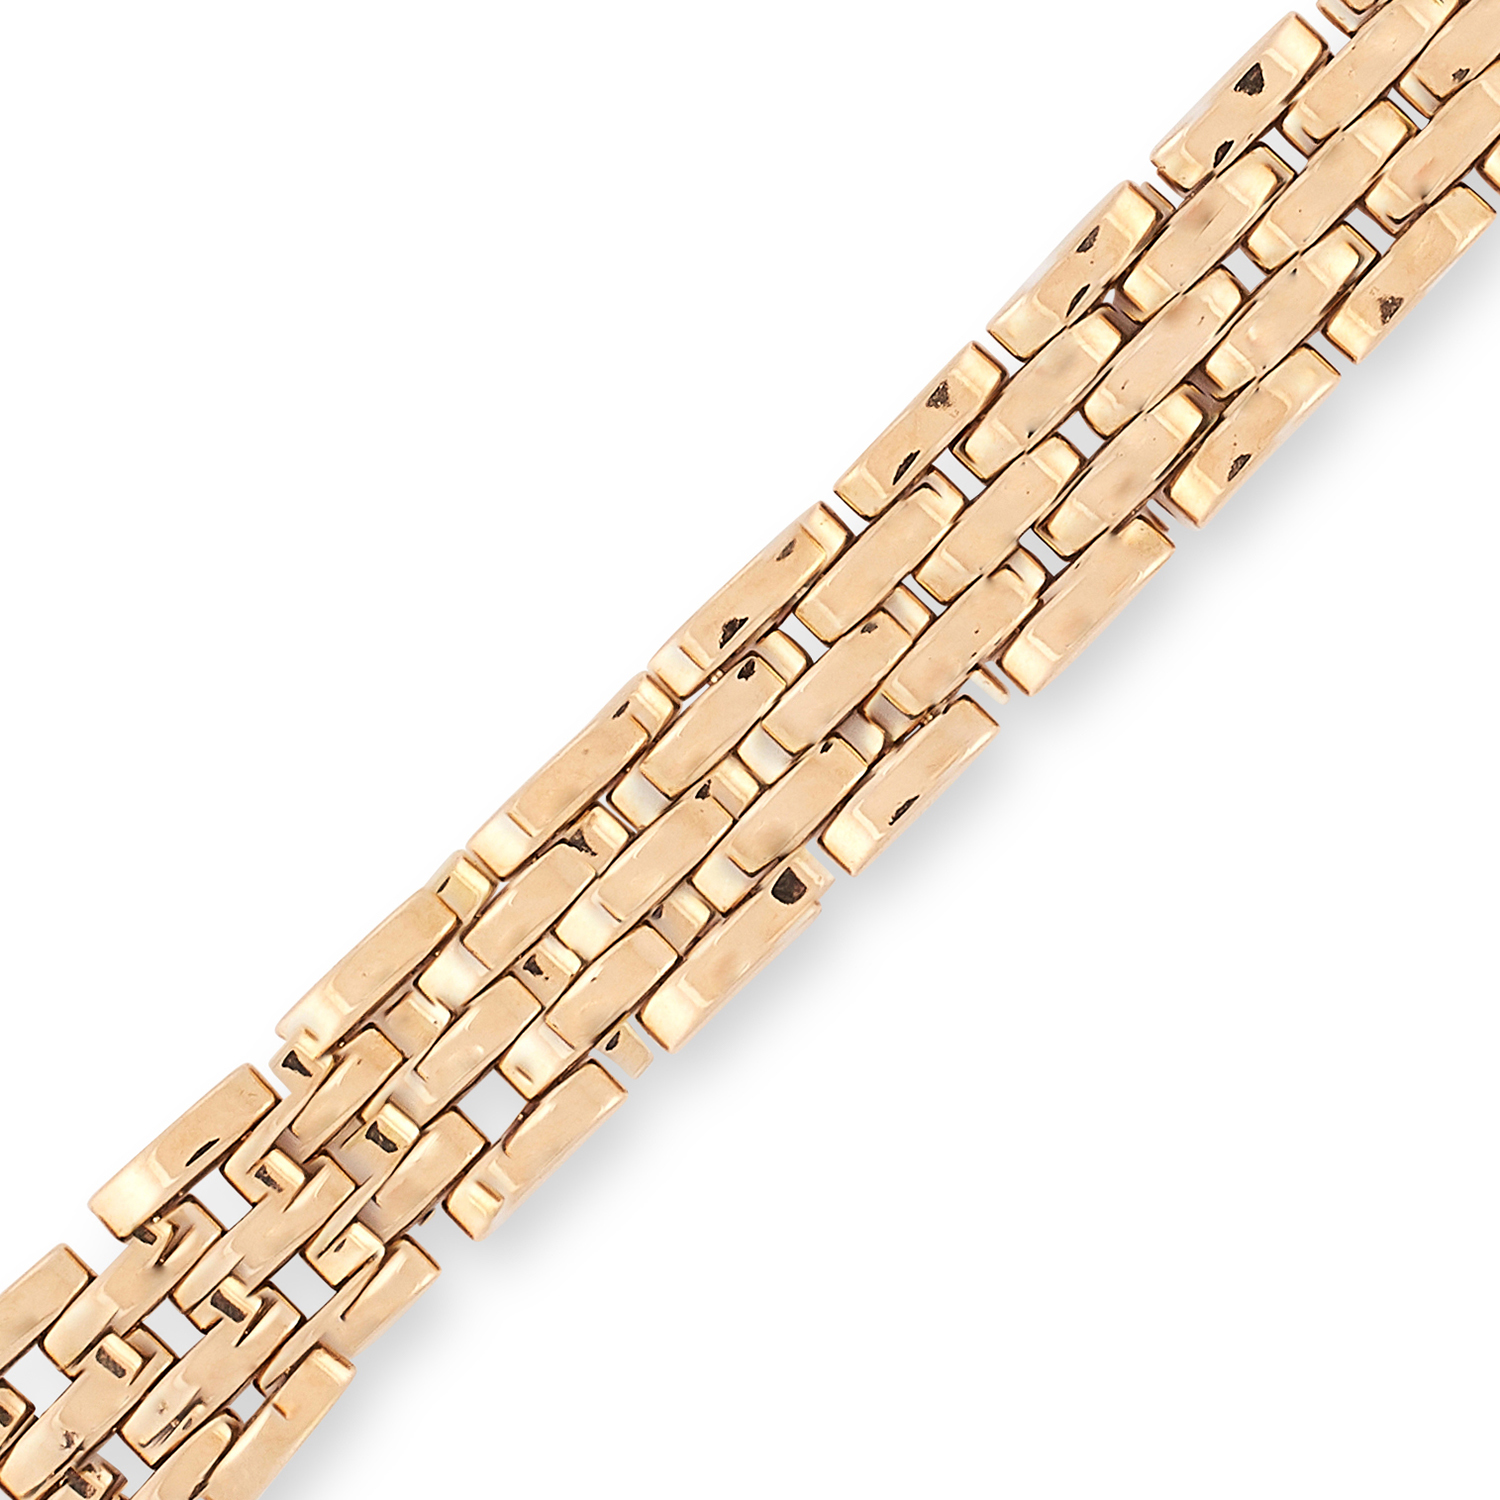 A MAILLON PANTHERE BRACELET, CARTIER designed as a five rows of chain links, signed Cartier and - Image 2 of 2